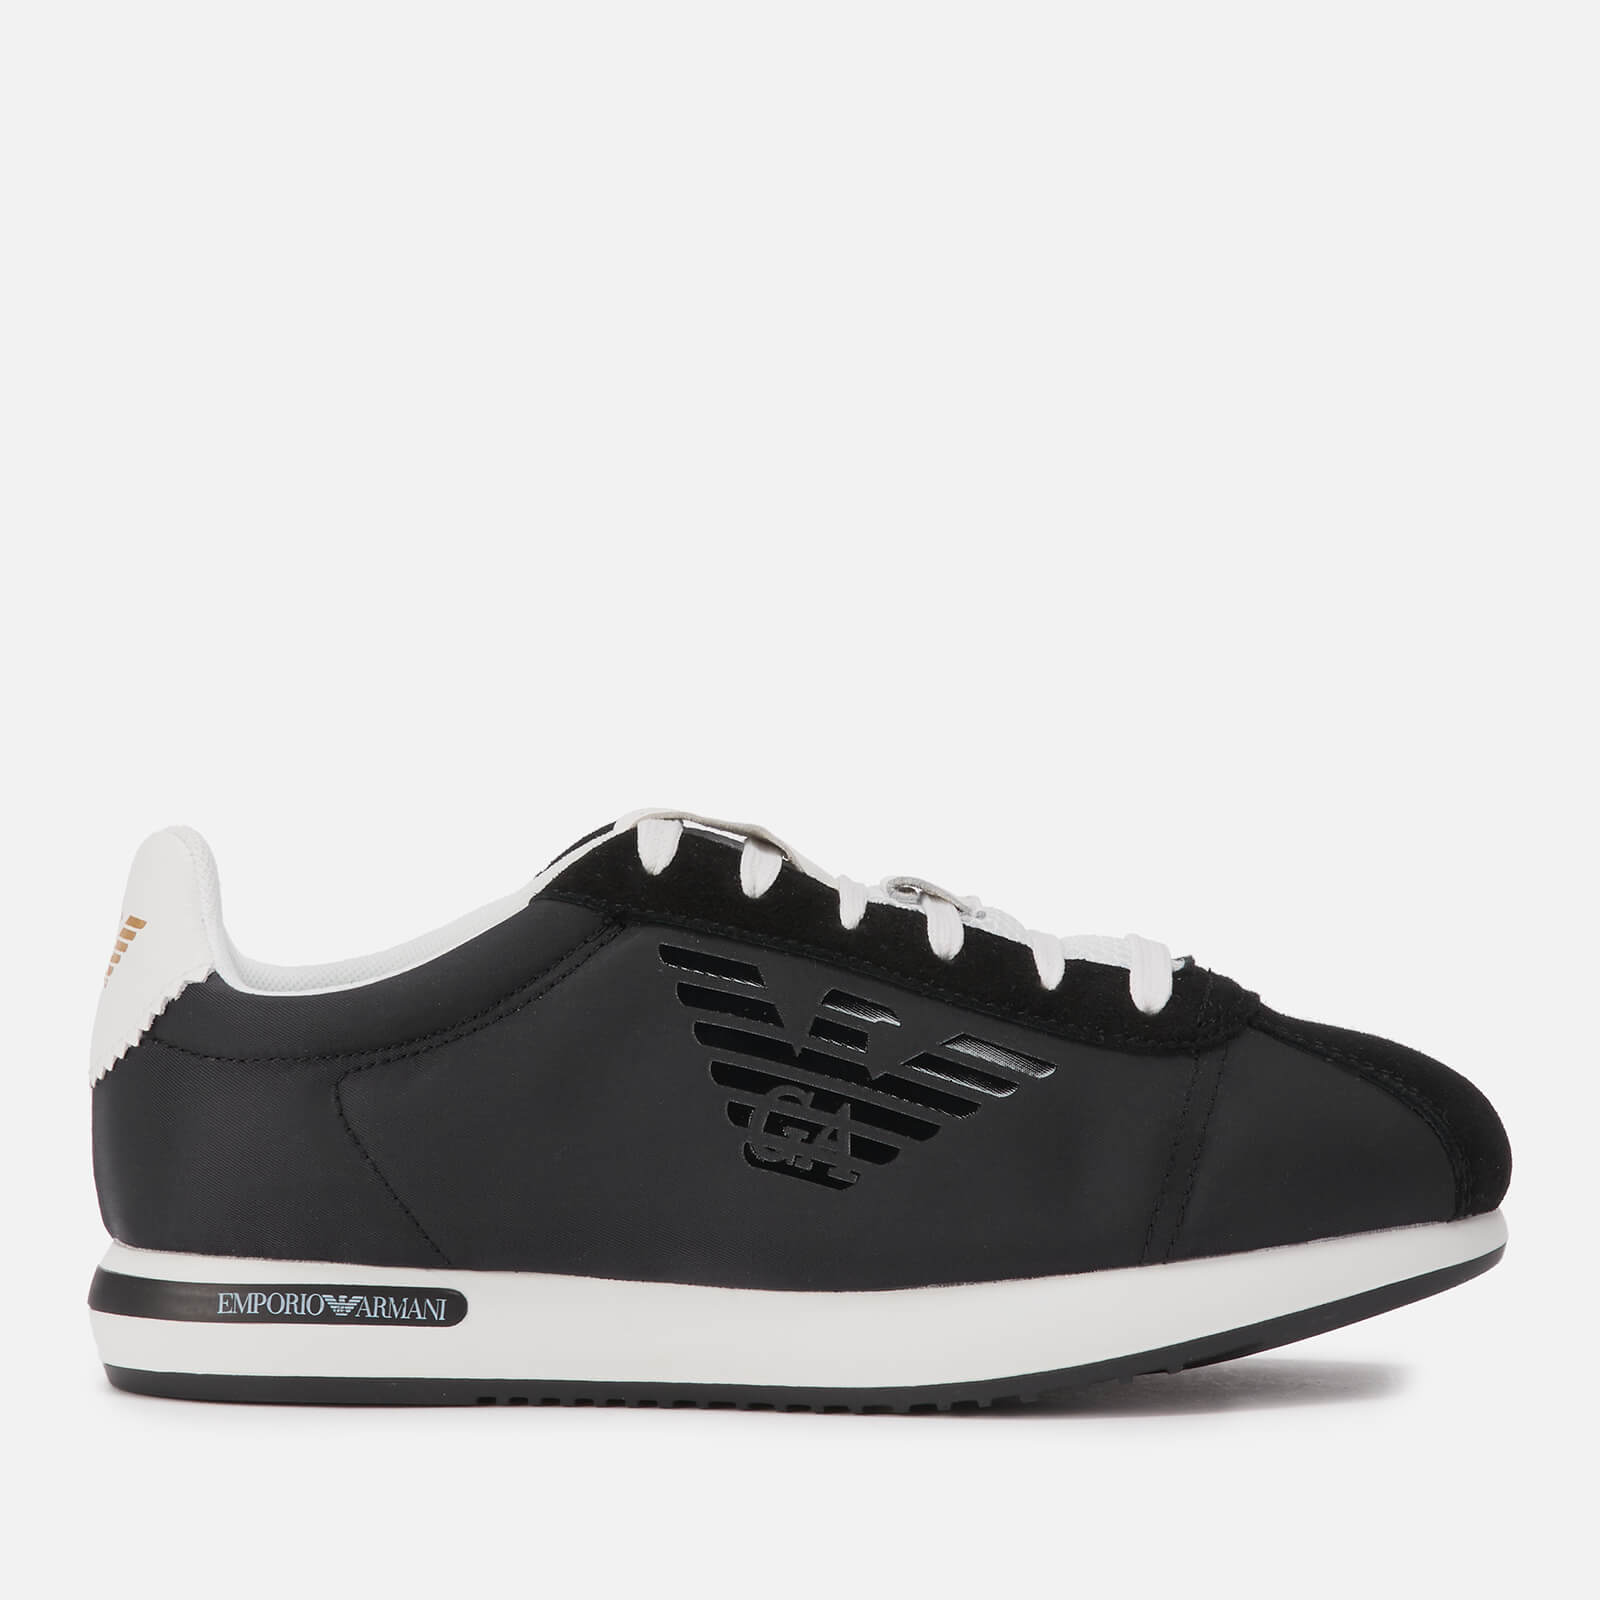 Emporio Armani Women's Biga Runner Style Trainers - Black/White - UK 6 - Black/White